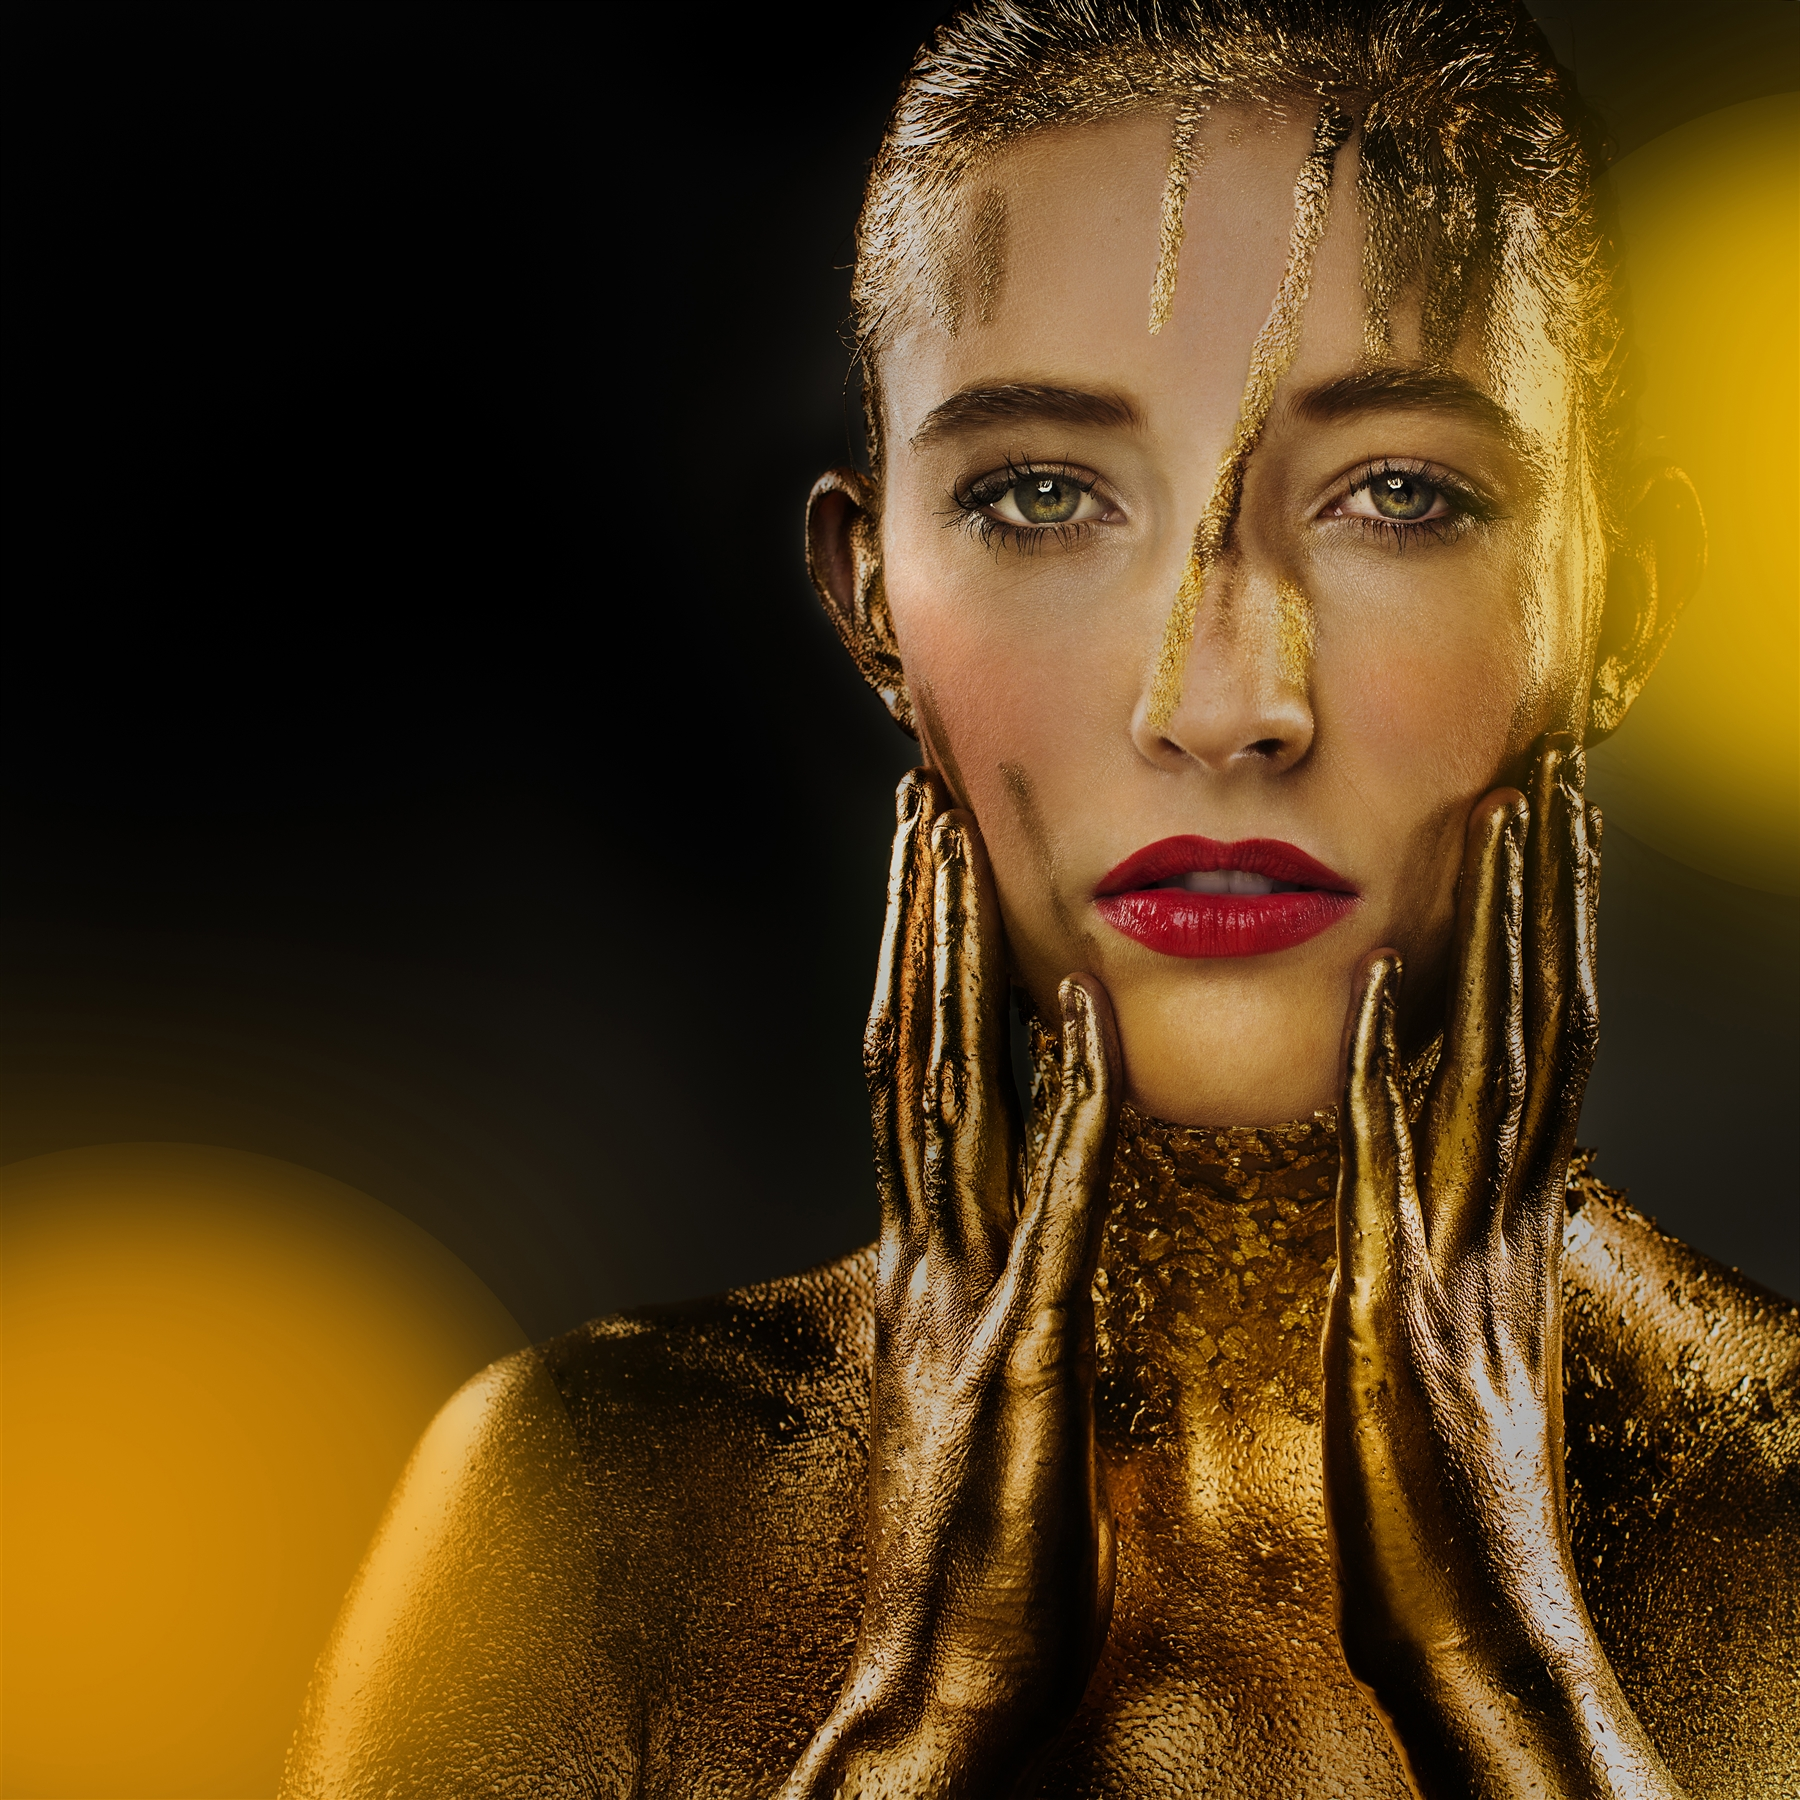 Winnende foto Puur Goud MPN Award 2015 ©Kim Balster | Make-up @Chris Janssen